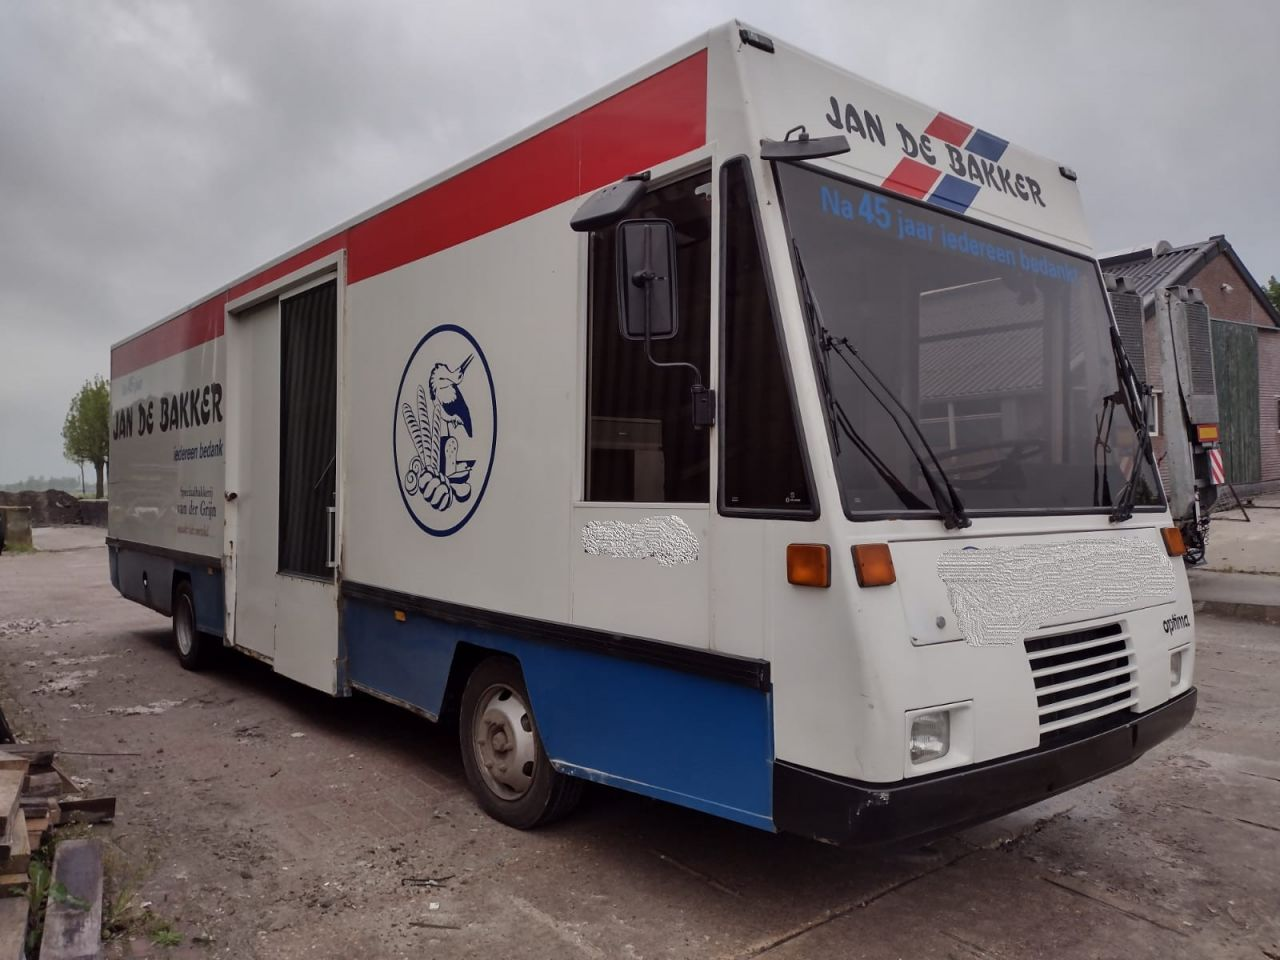 Rijdende winkel/SRV wagen Rijdende winkel/srv wagen MMBS